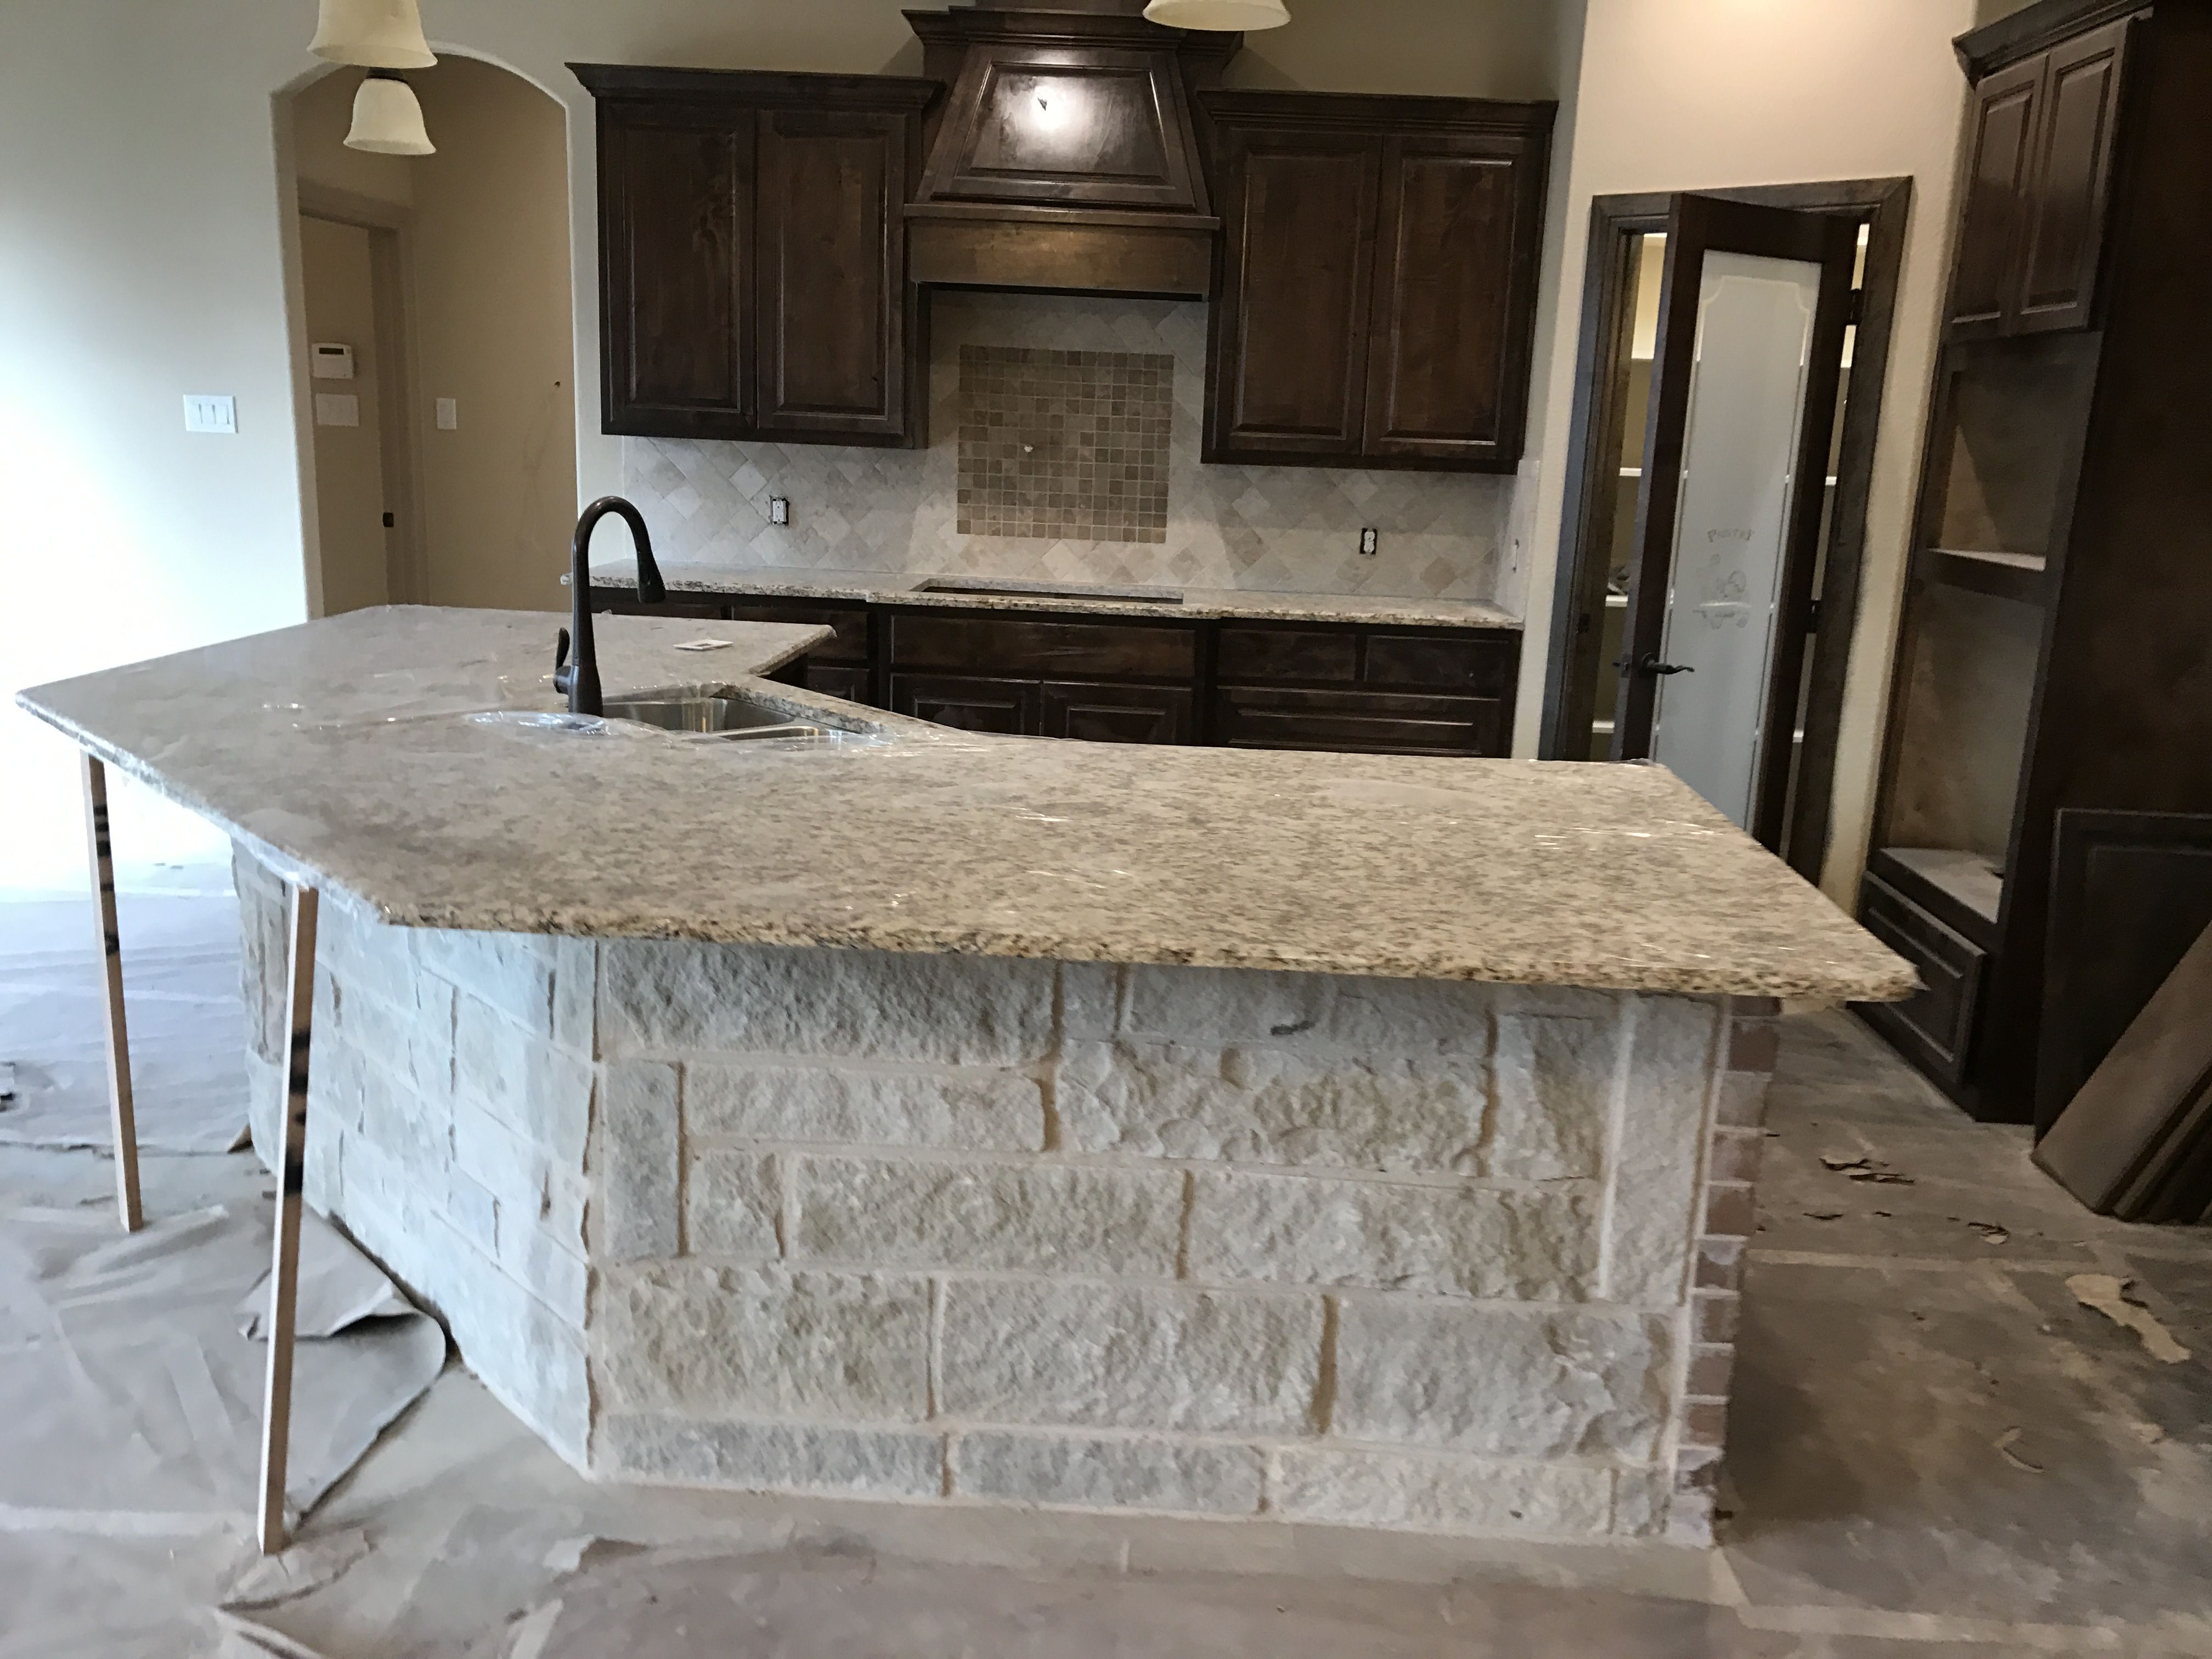 Kitchen High Bar Countertops In Giallo Napoli With Stone Face In The Works New Construction Bar Countertops Exterior Decor Granite Countertops